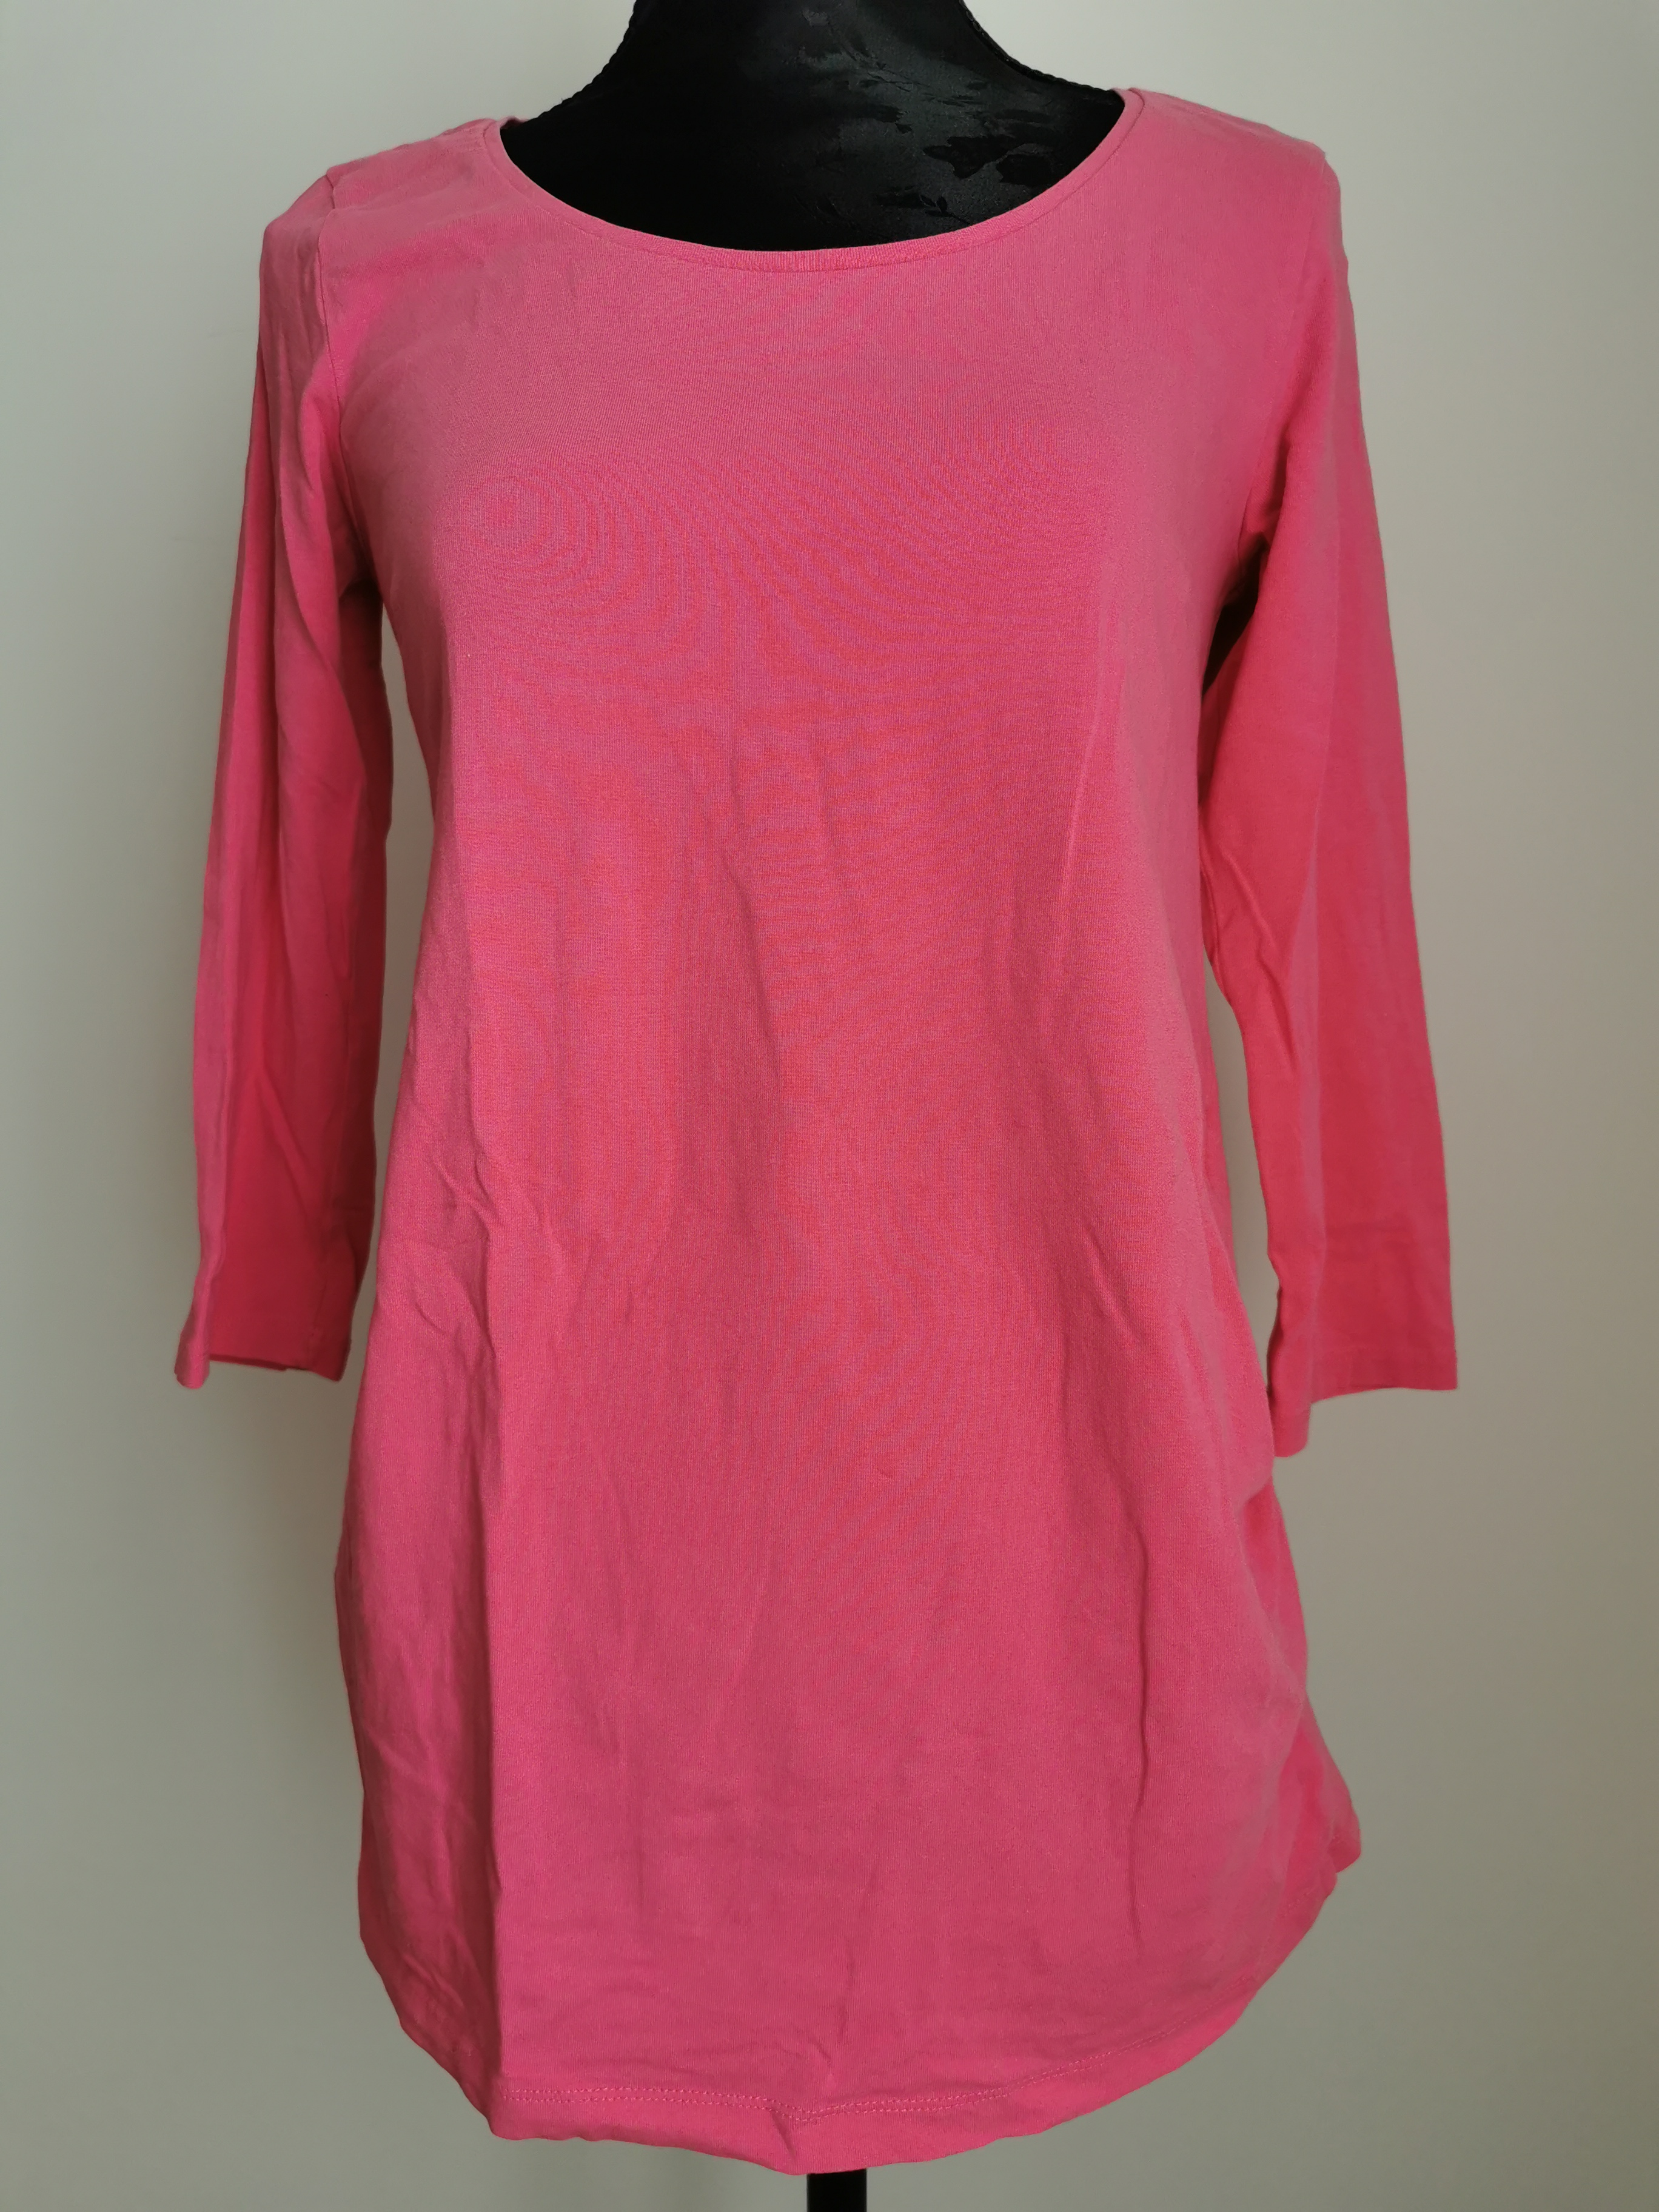 pinker 3/4 arm Pullover